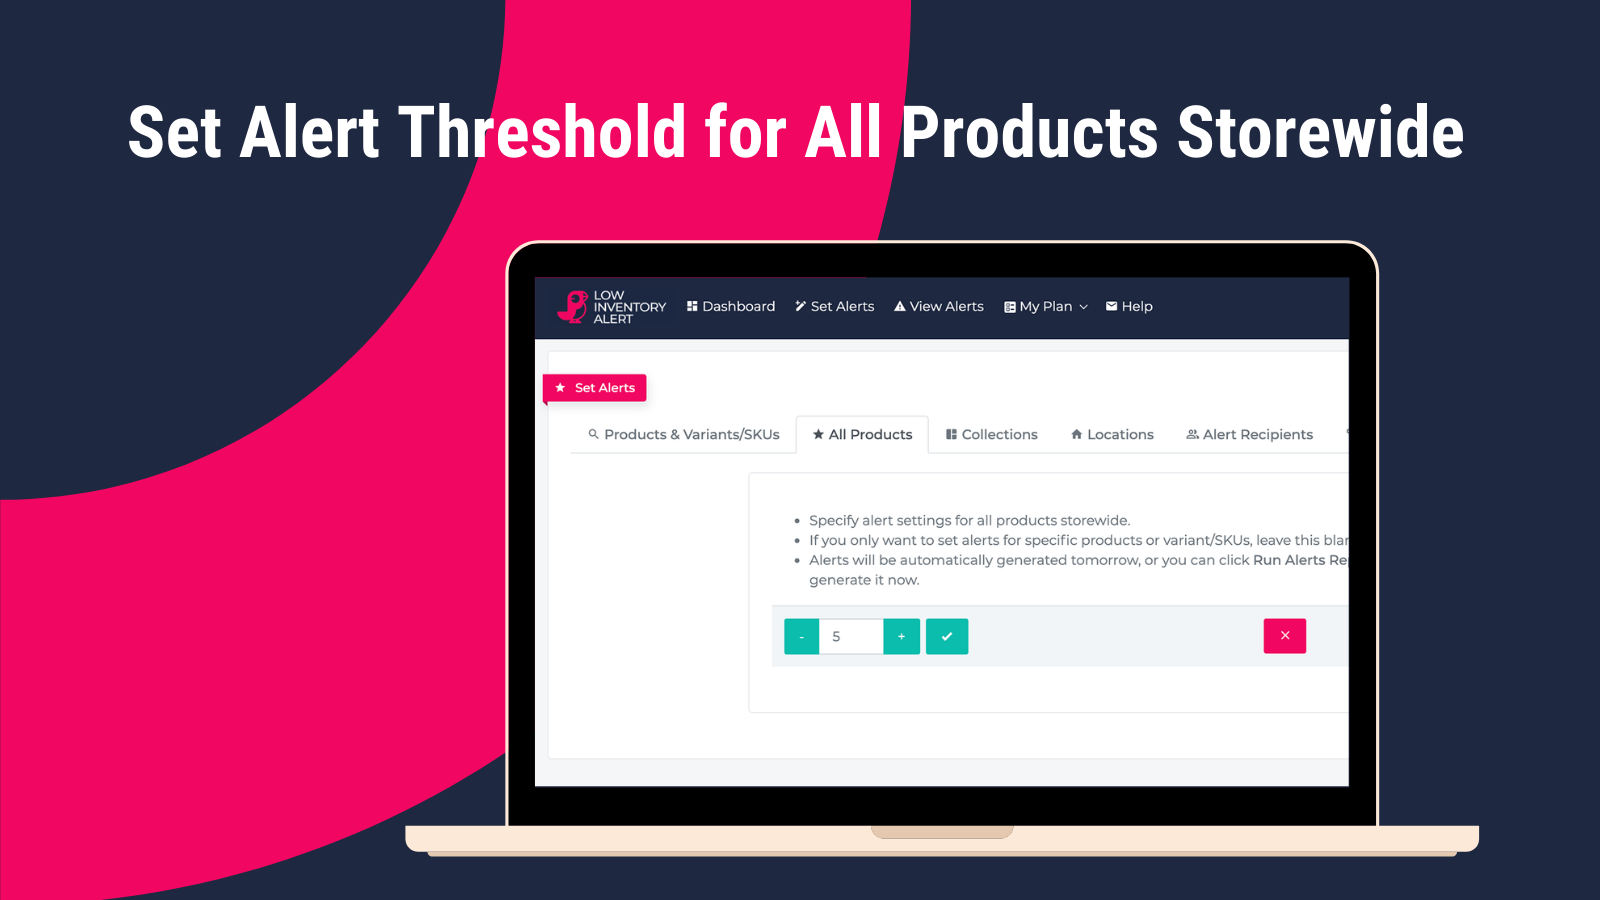 Set Alert Threshold for All Products Storewide